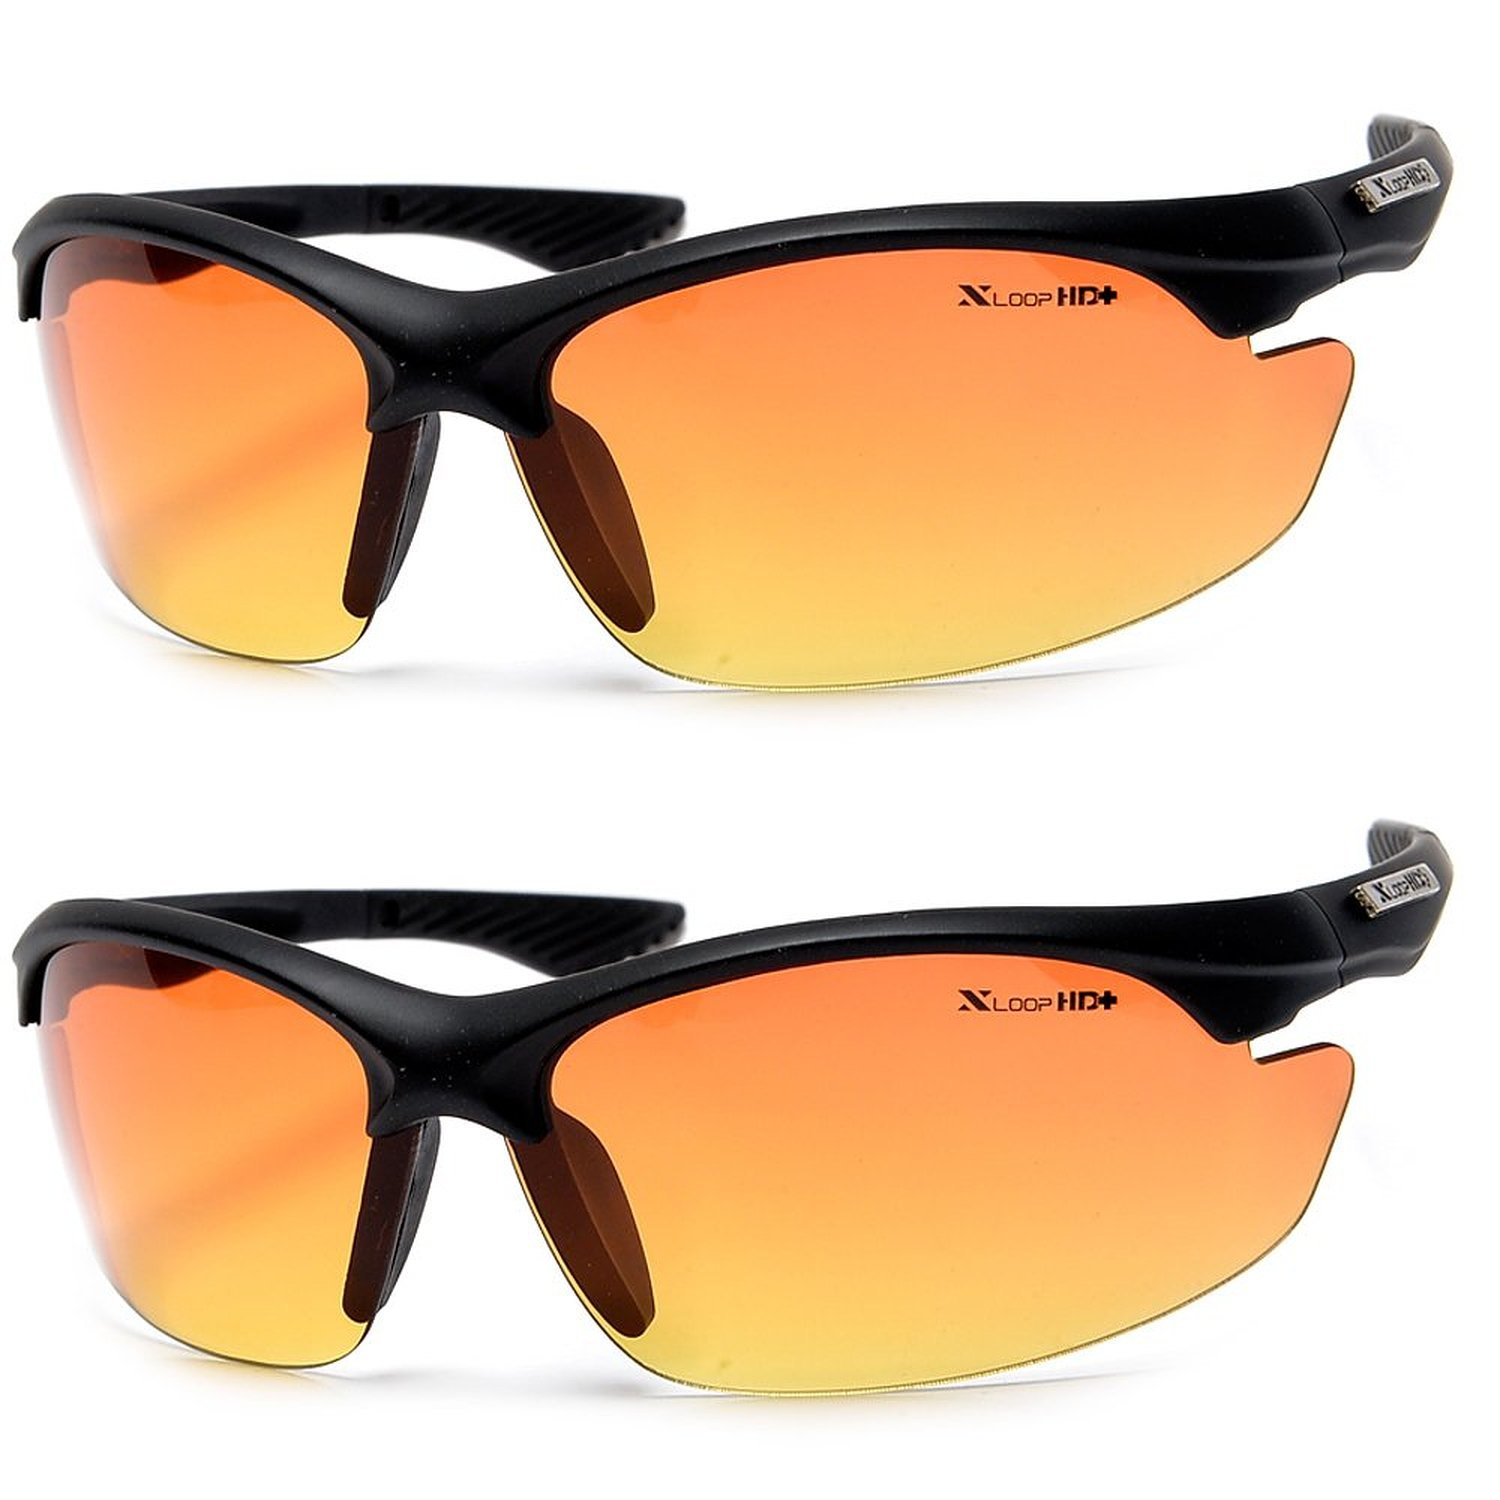 Xloop HD Vision Anti Glare Driving Sunglasses - Semi Rimless